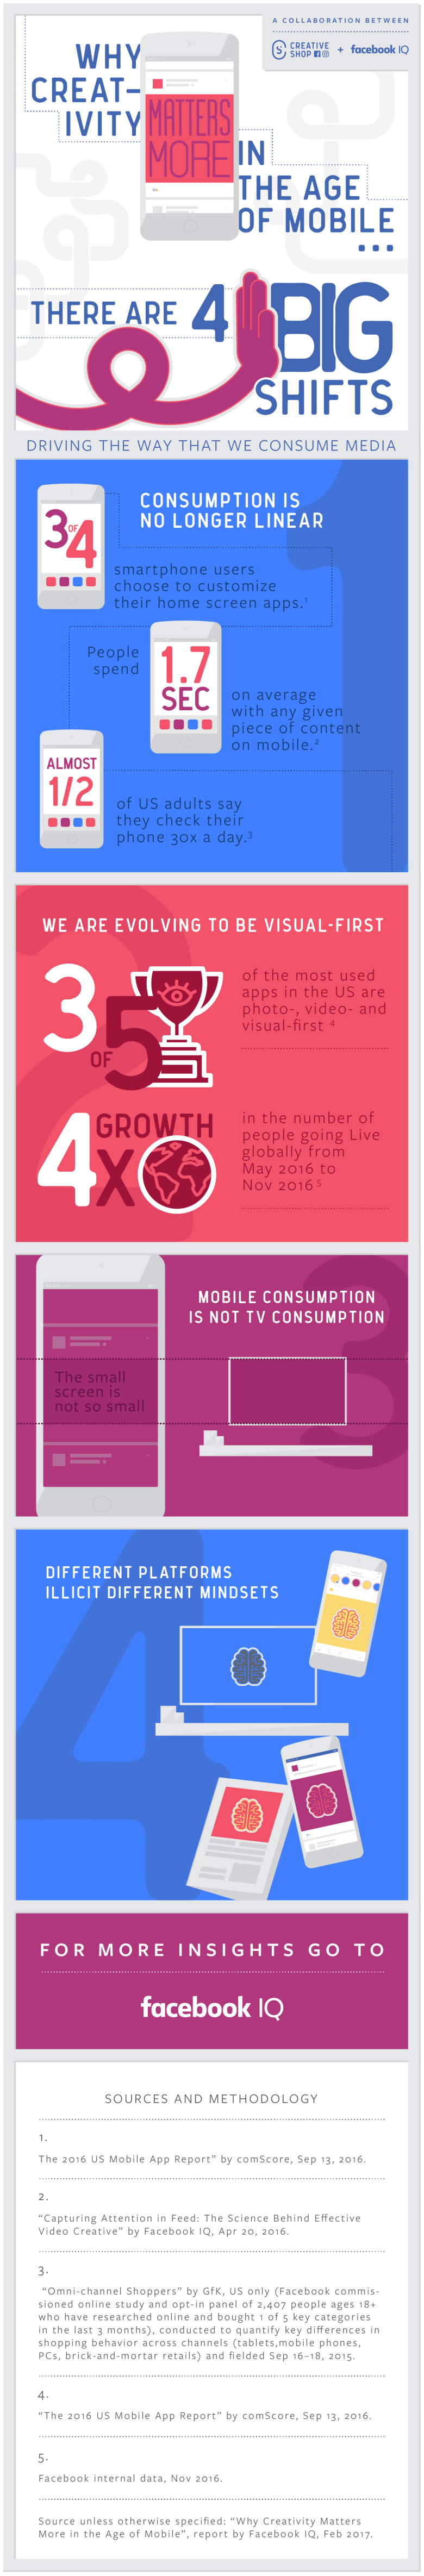 Why Creativity Matters More in the Age of Mobile [Infographic] | Social Media Today